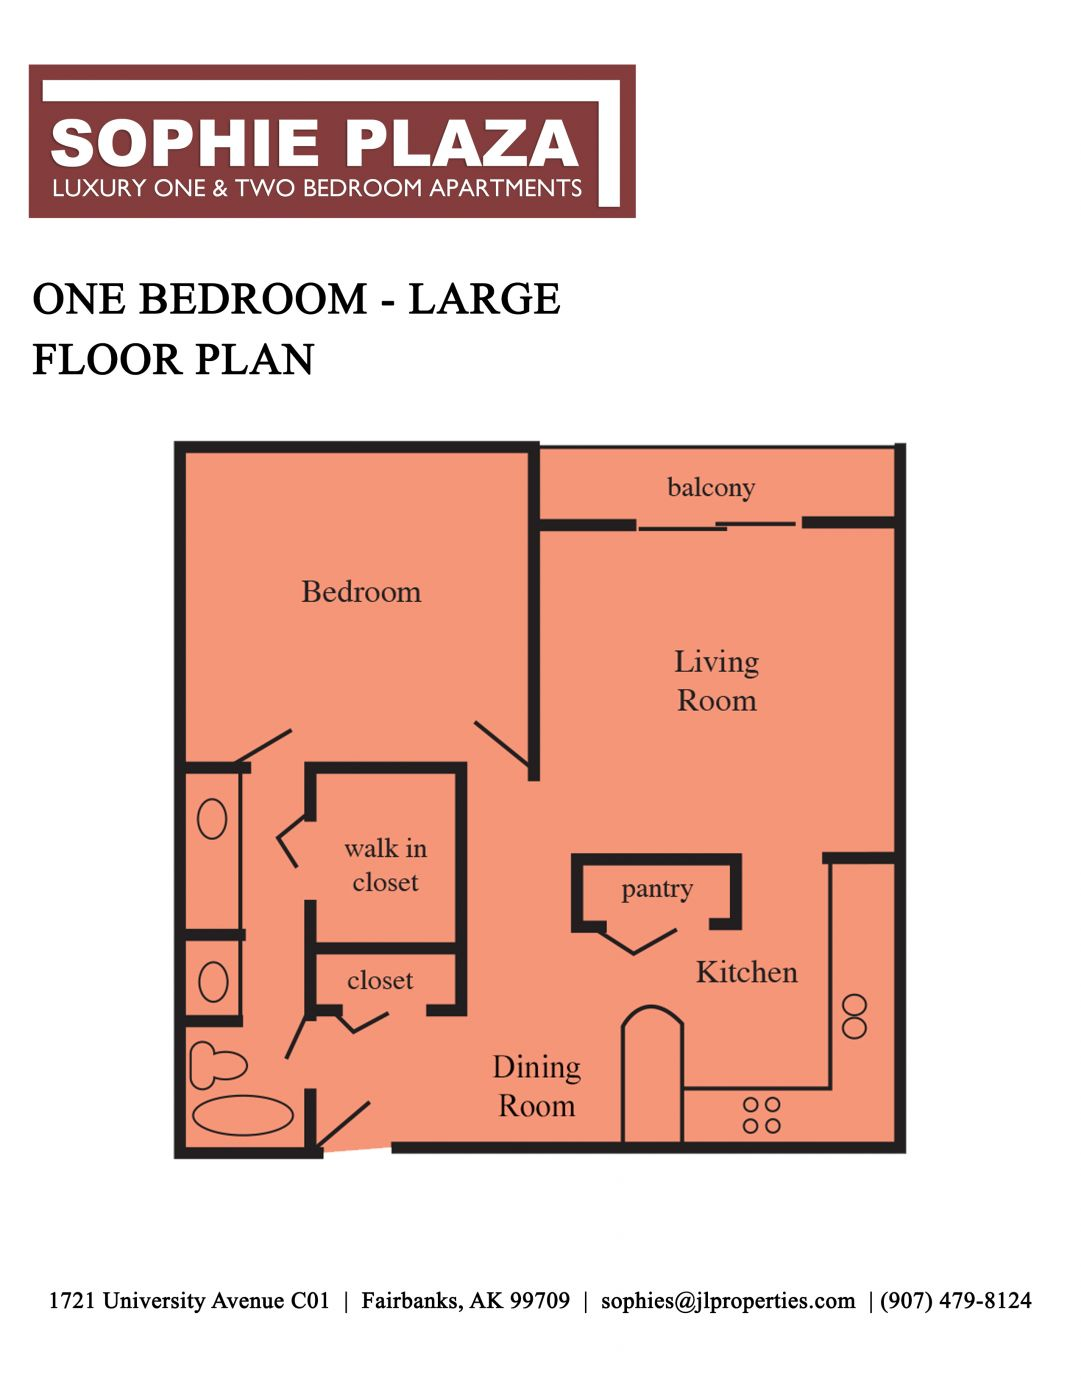 One Bedroom - Large